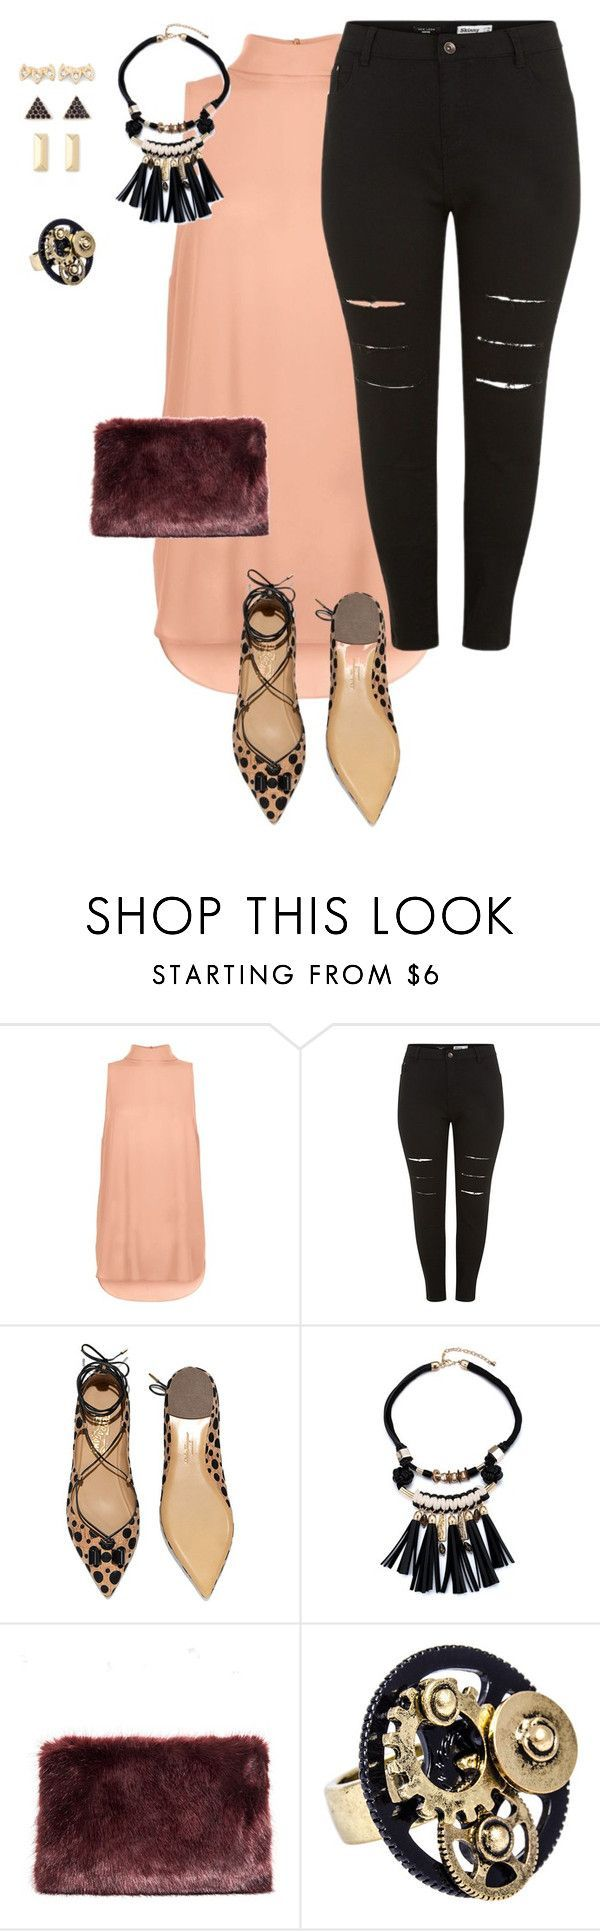 """plus size simple and pretty night out"" by kristie-payne ❤ liked on Polyvore featuring Salvatore Ferragamo, Stella & Dot, women's clothing, women, female, woman, misses and juniors"